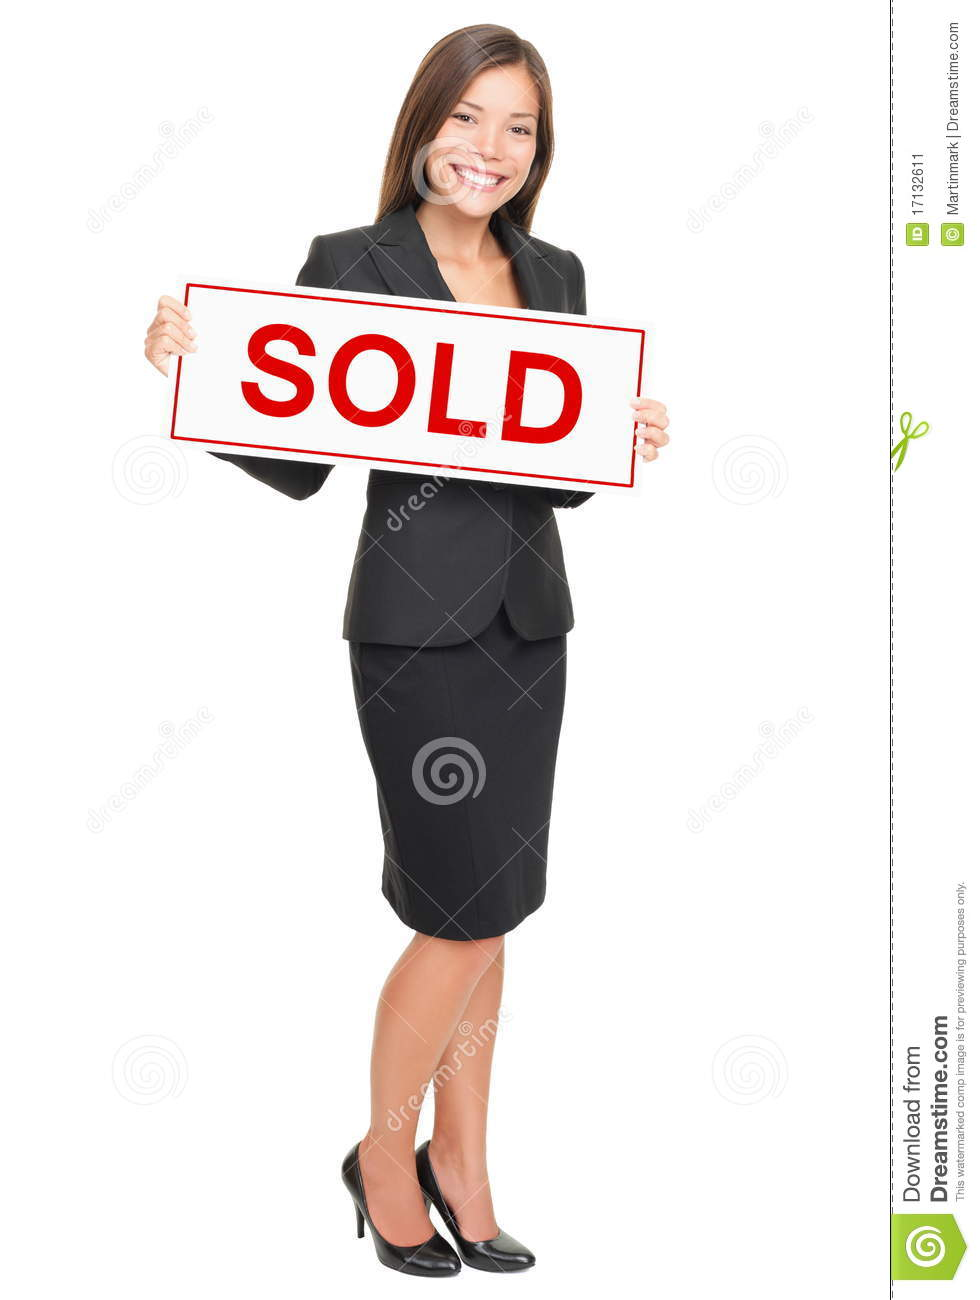 Real Estate Agent Isolated On White Background Stock Image - Image ...